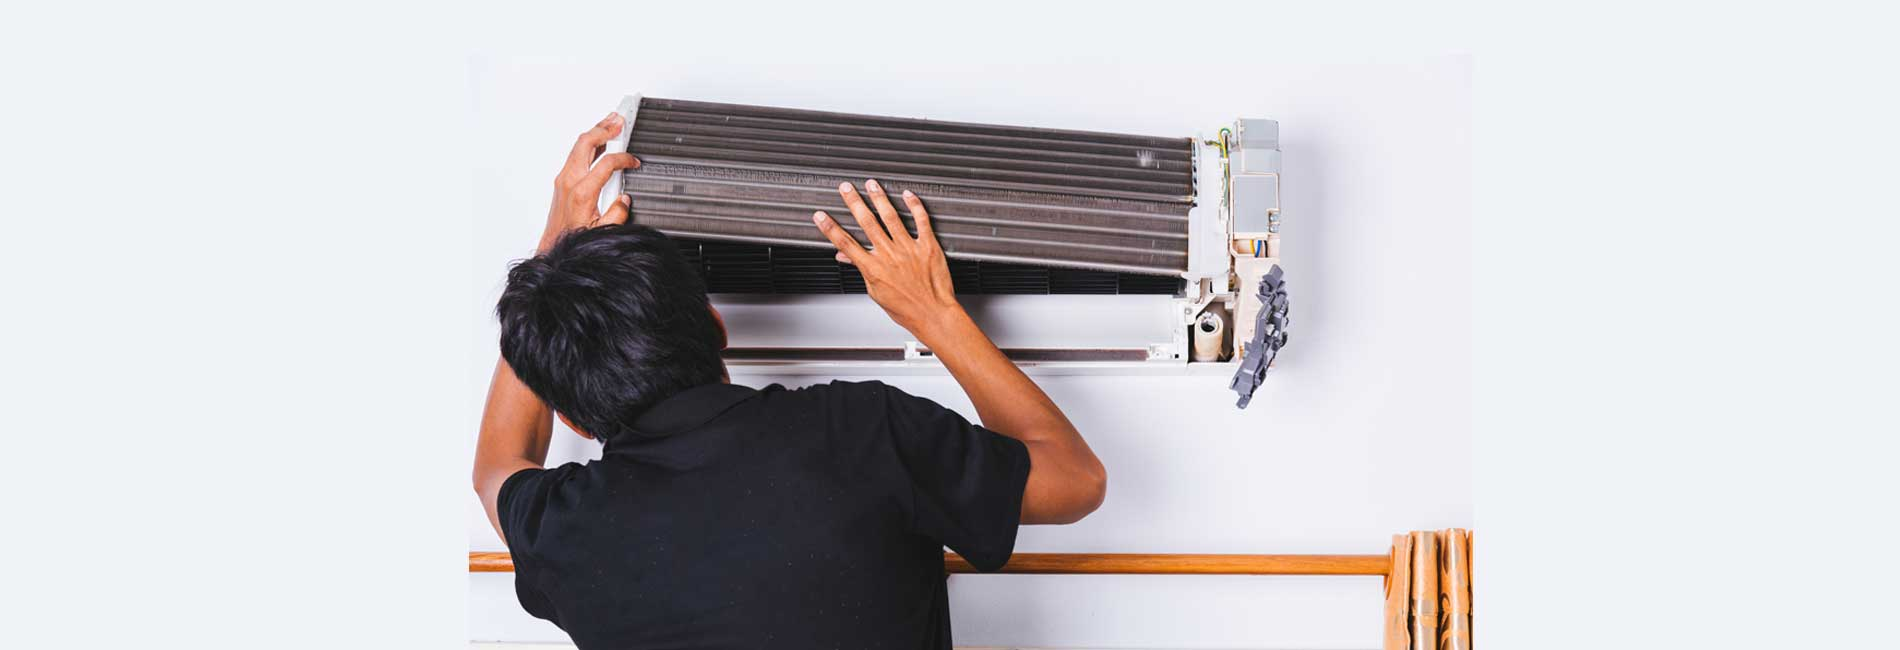 Daikin AC General Service in Guduvanchery